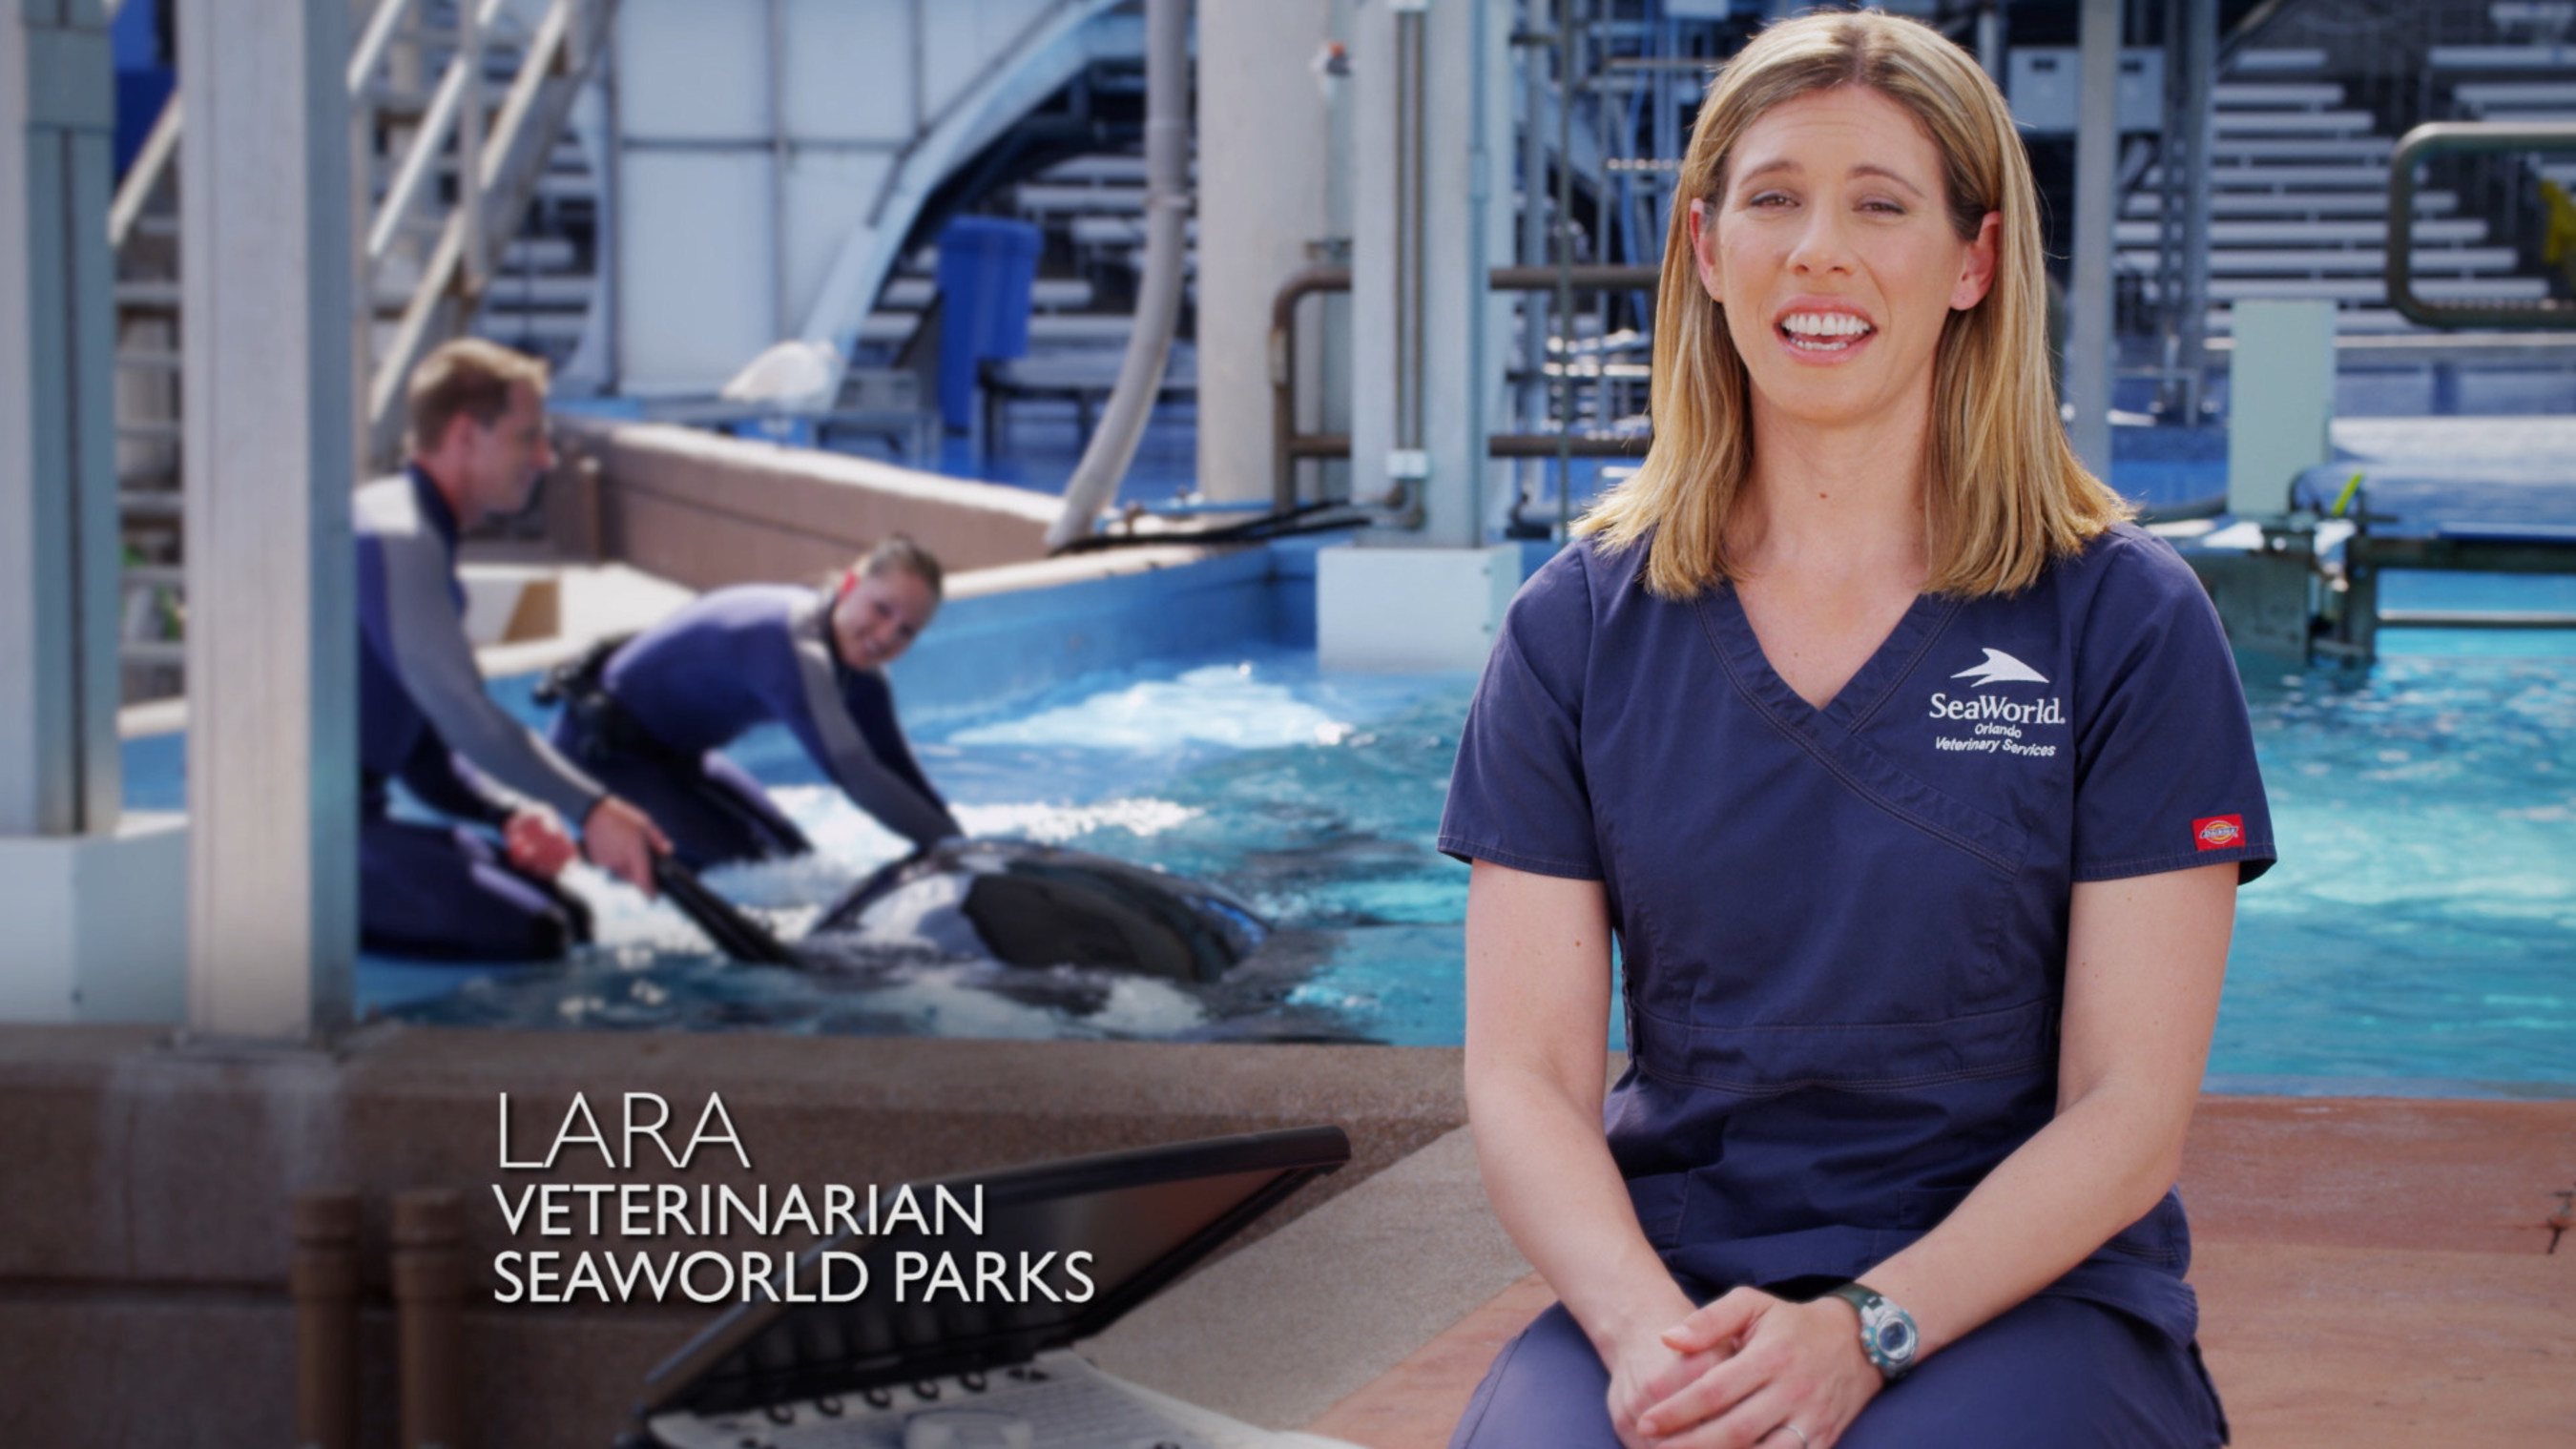 SeaWorld veterinarian Dr. Lara Croft speaks about her commitment to the care of killer whales in SeaWorld's new TV ad.